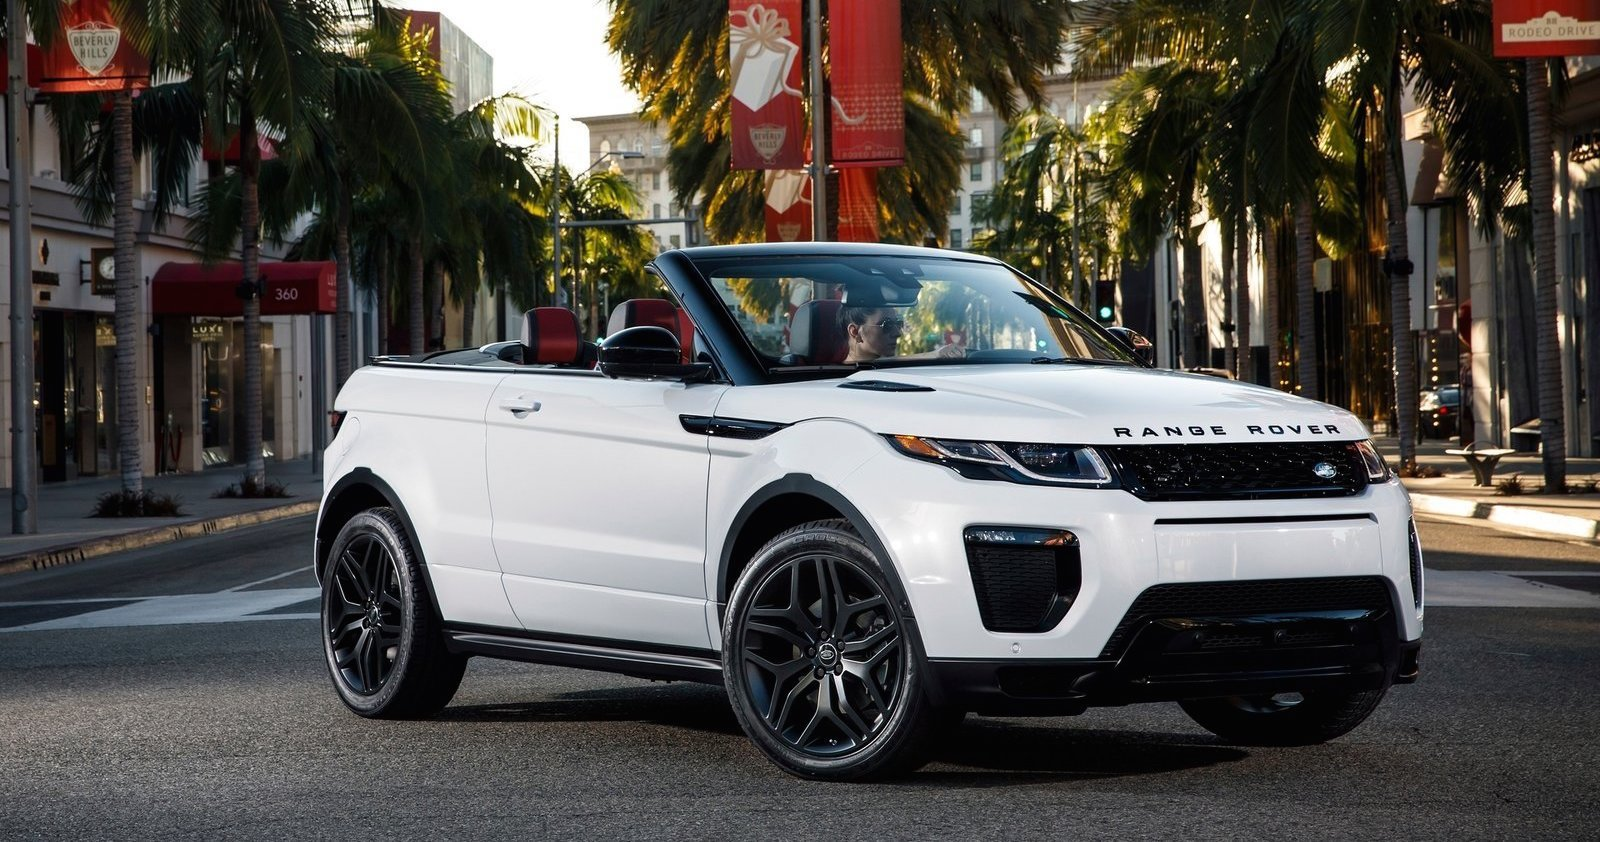 New 2016 Land Rover And Range Rover New Cars Photos 1 Of 4 On This Month